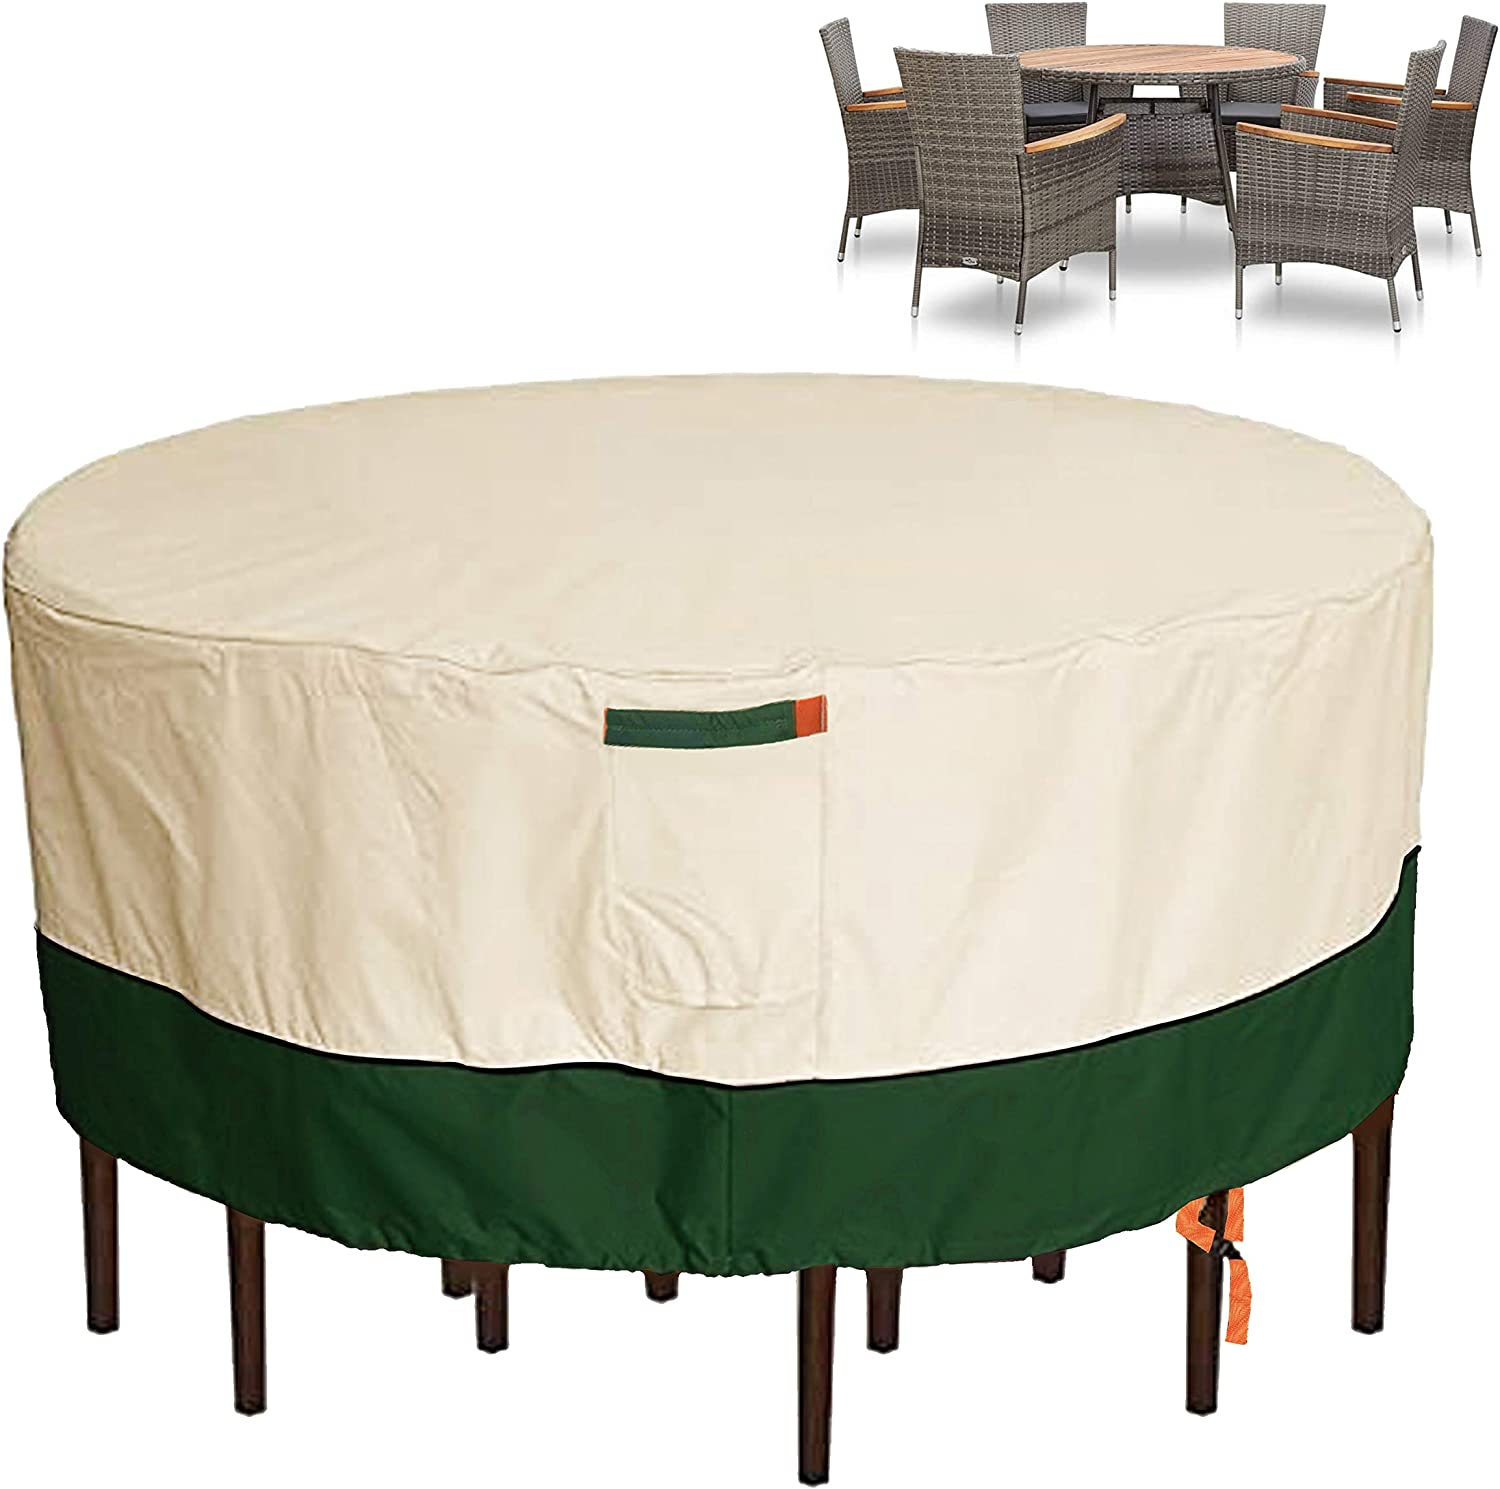 Cheap mail order shopping Umbrauto Outdoor Chicago Mall Table Round Covers Patio Furniture C Waterproof